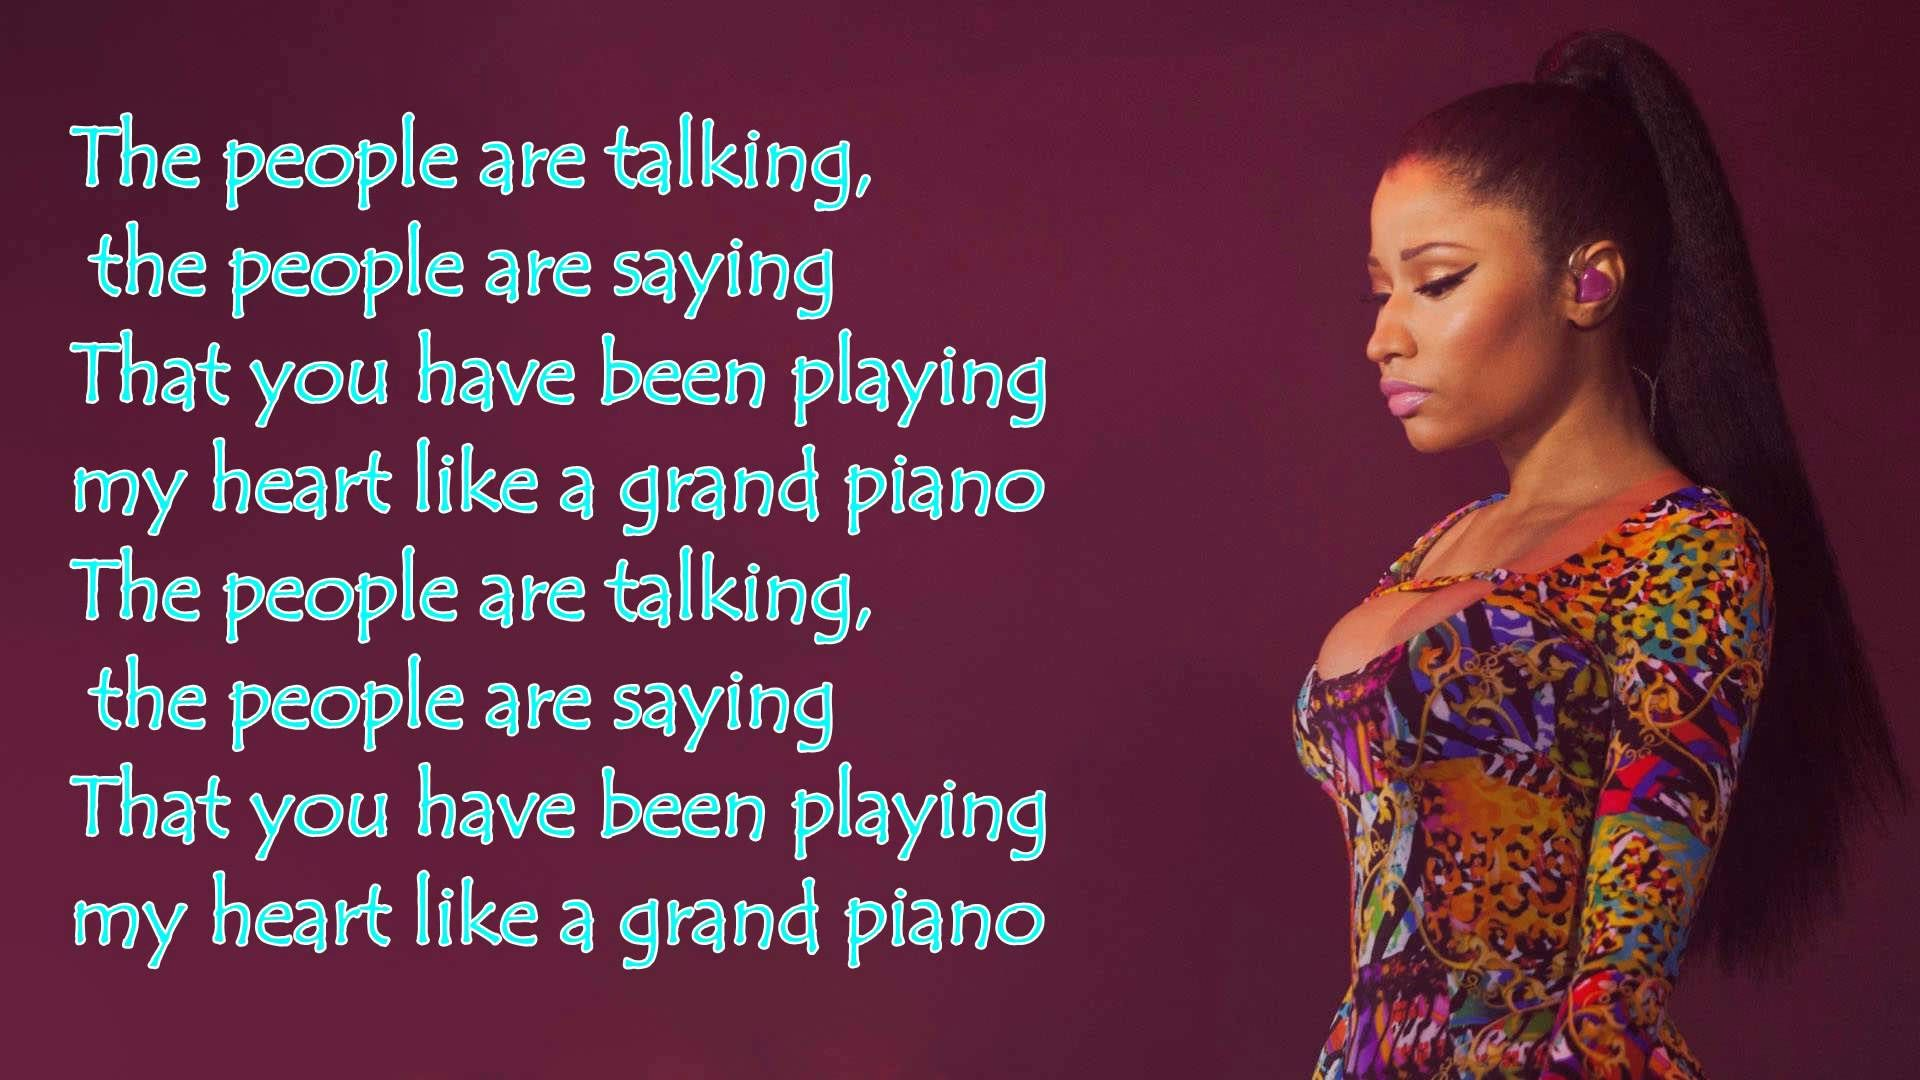 Nicki Minaj Grand Piano Lyrics Nicki Minaj Lyrics Nicki Minaj More Lyrics